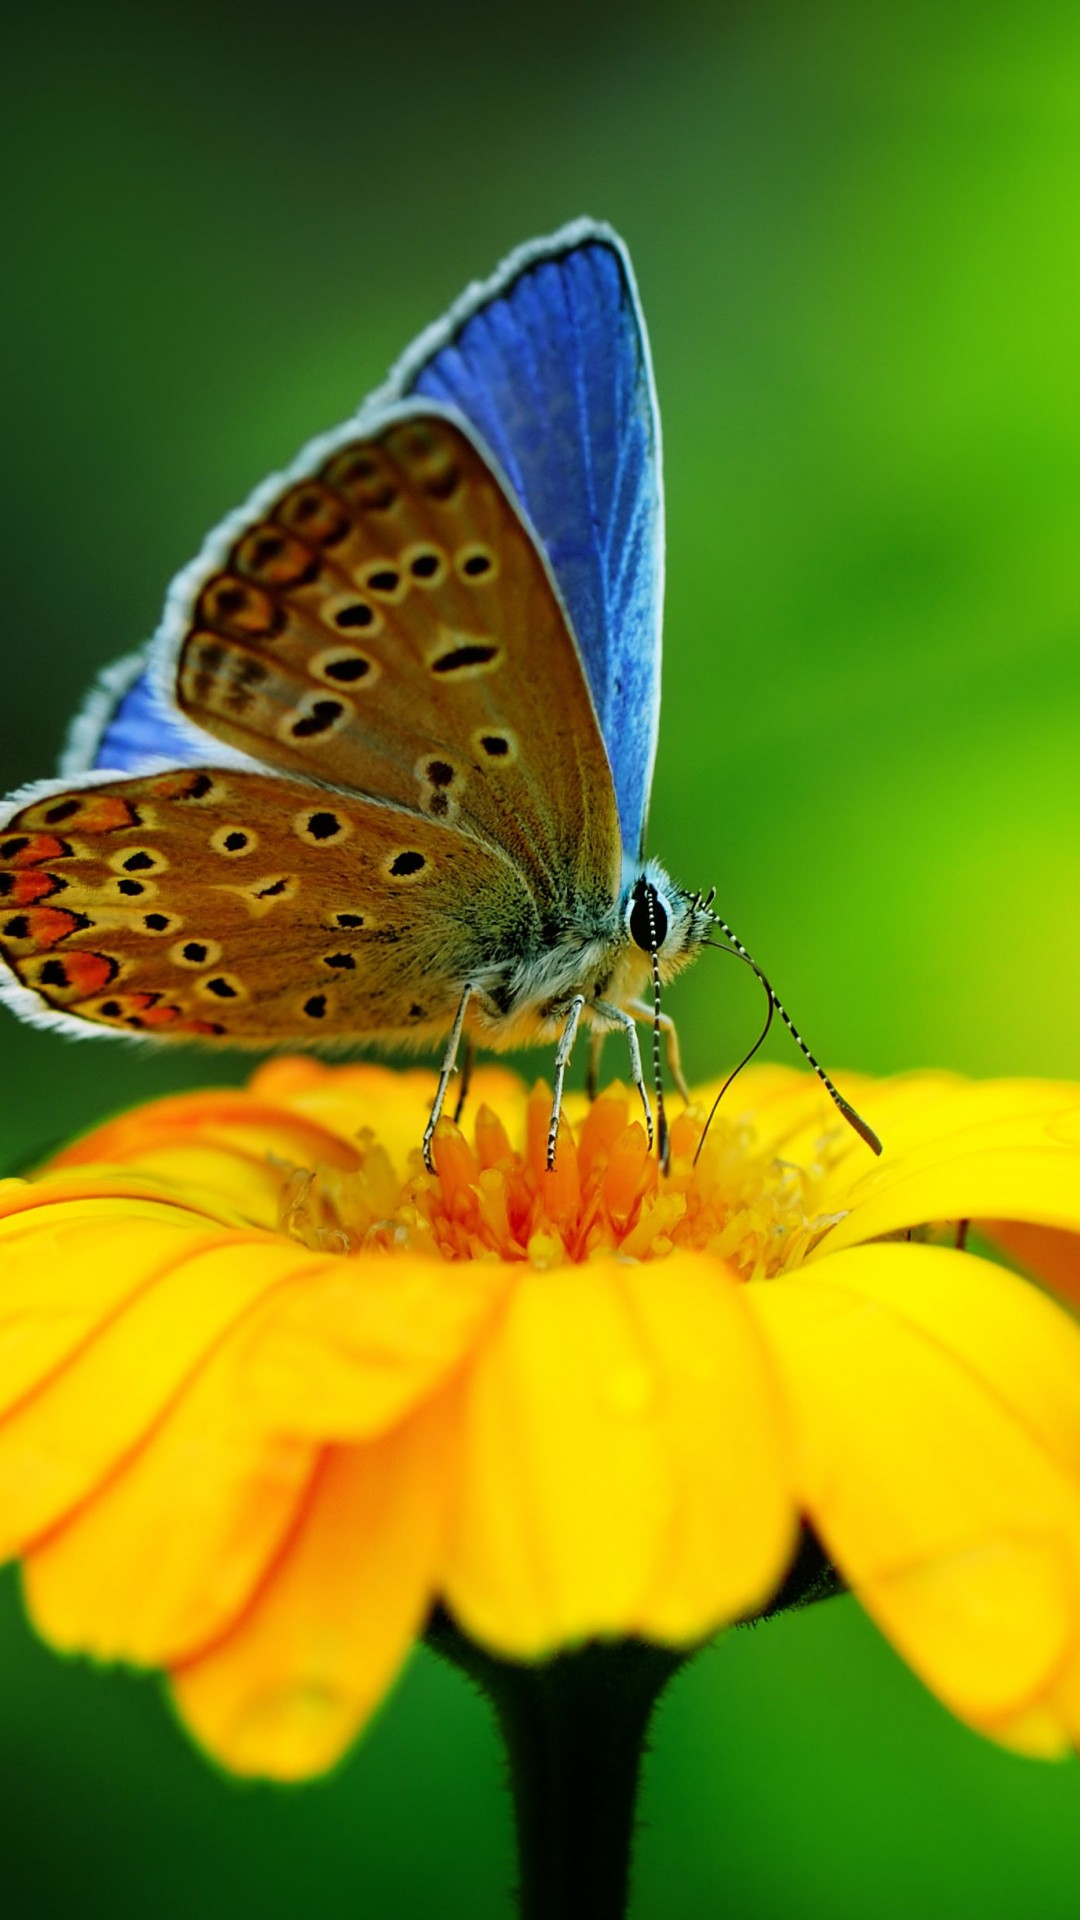 Butterfly Collecting Pollen Wallpaper for SAMSUNG Galaxy S5